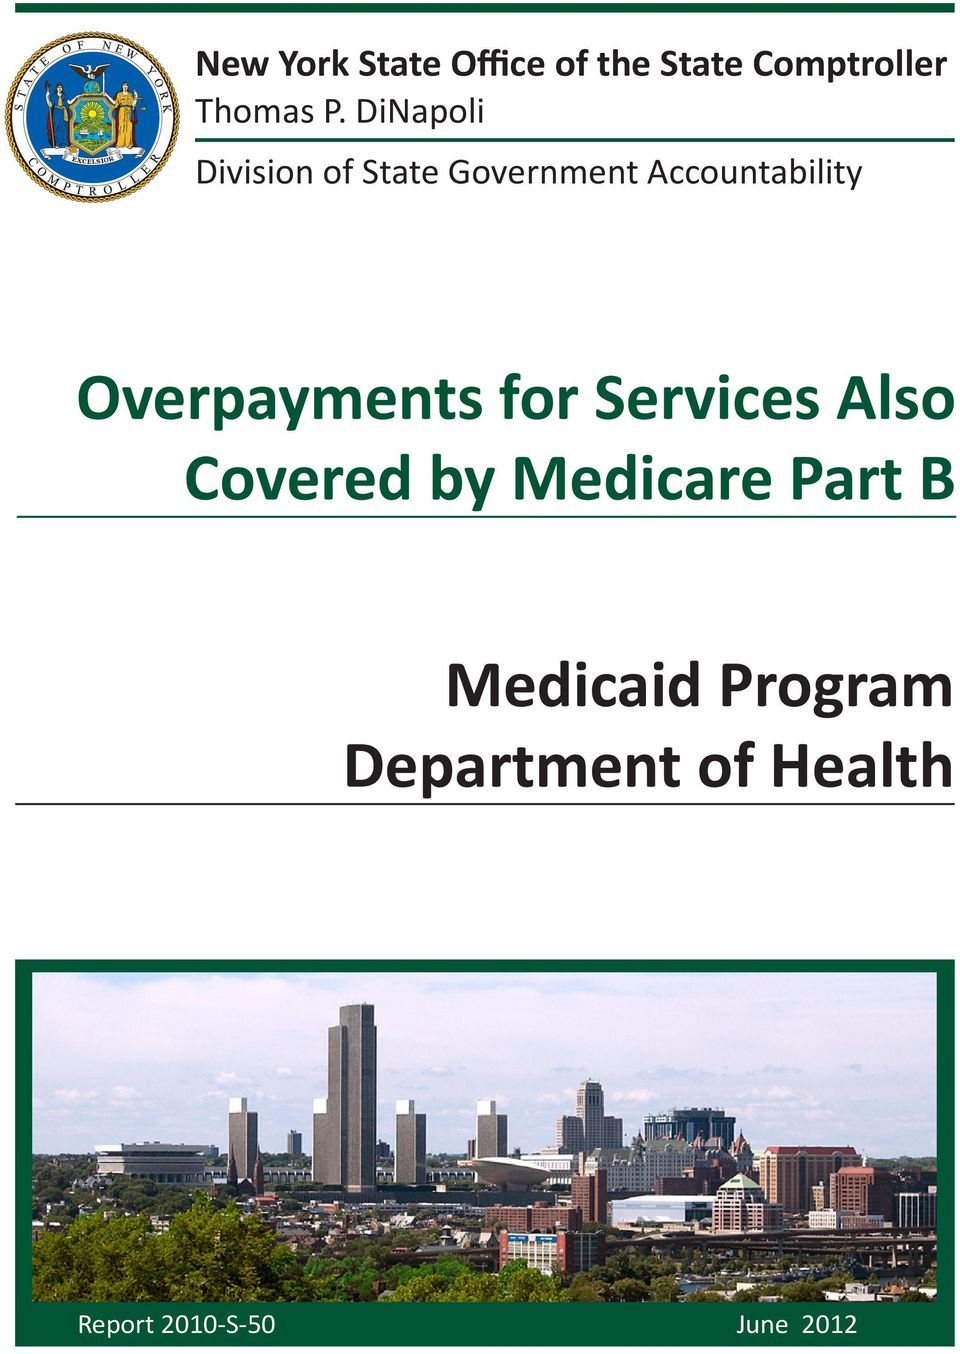 Overpayments for Services Also Covered by Medicare Part B